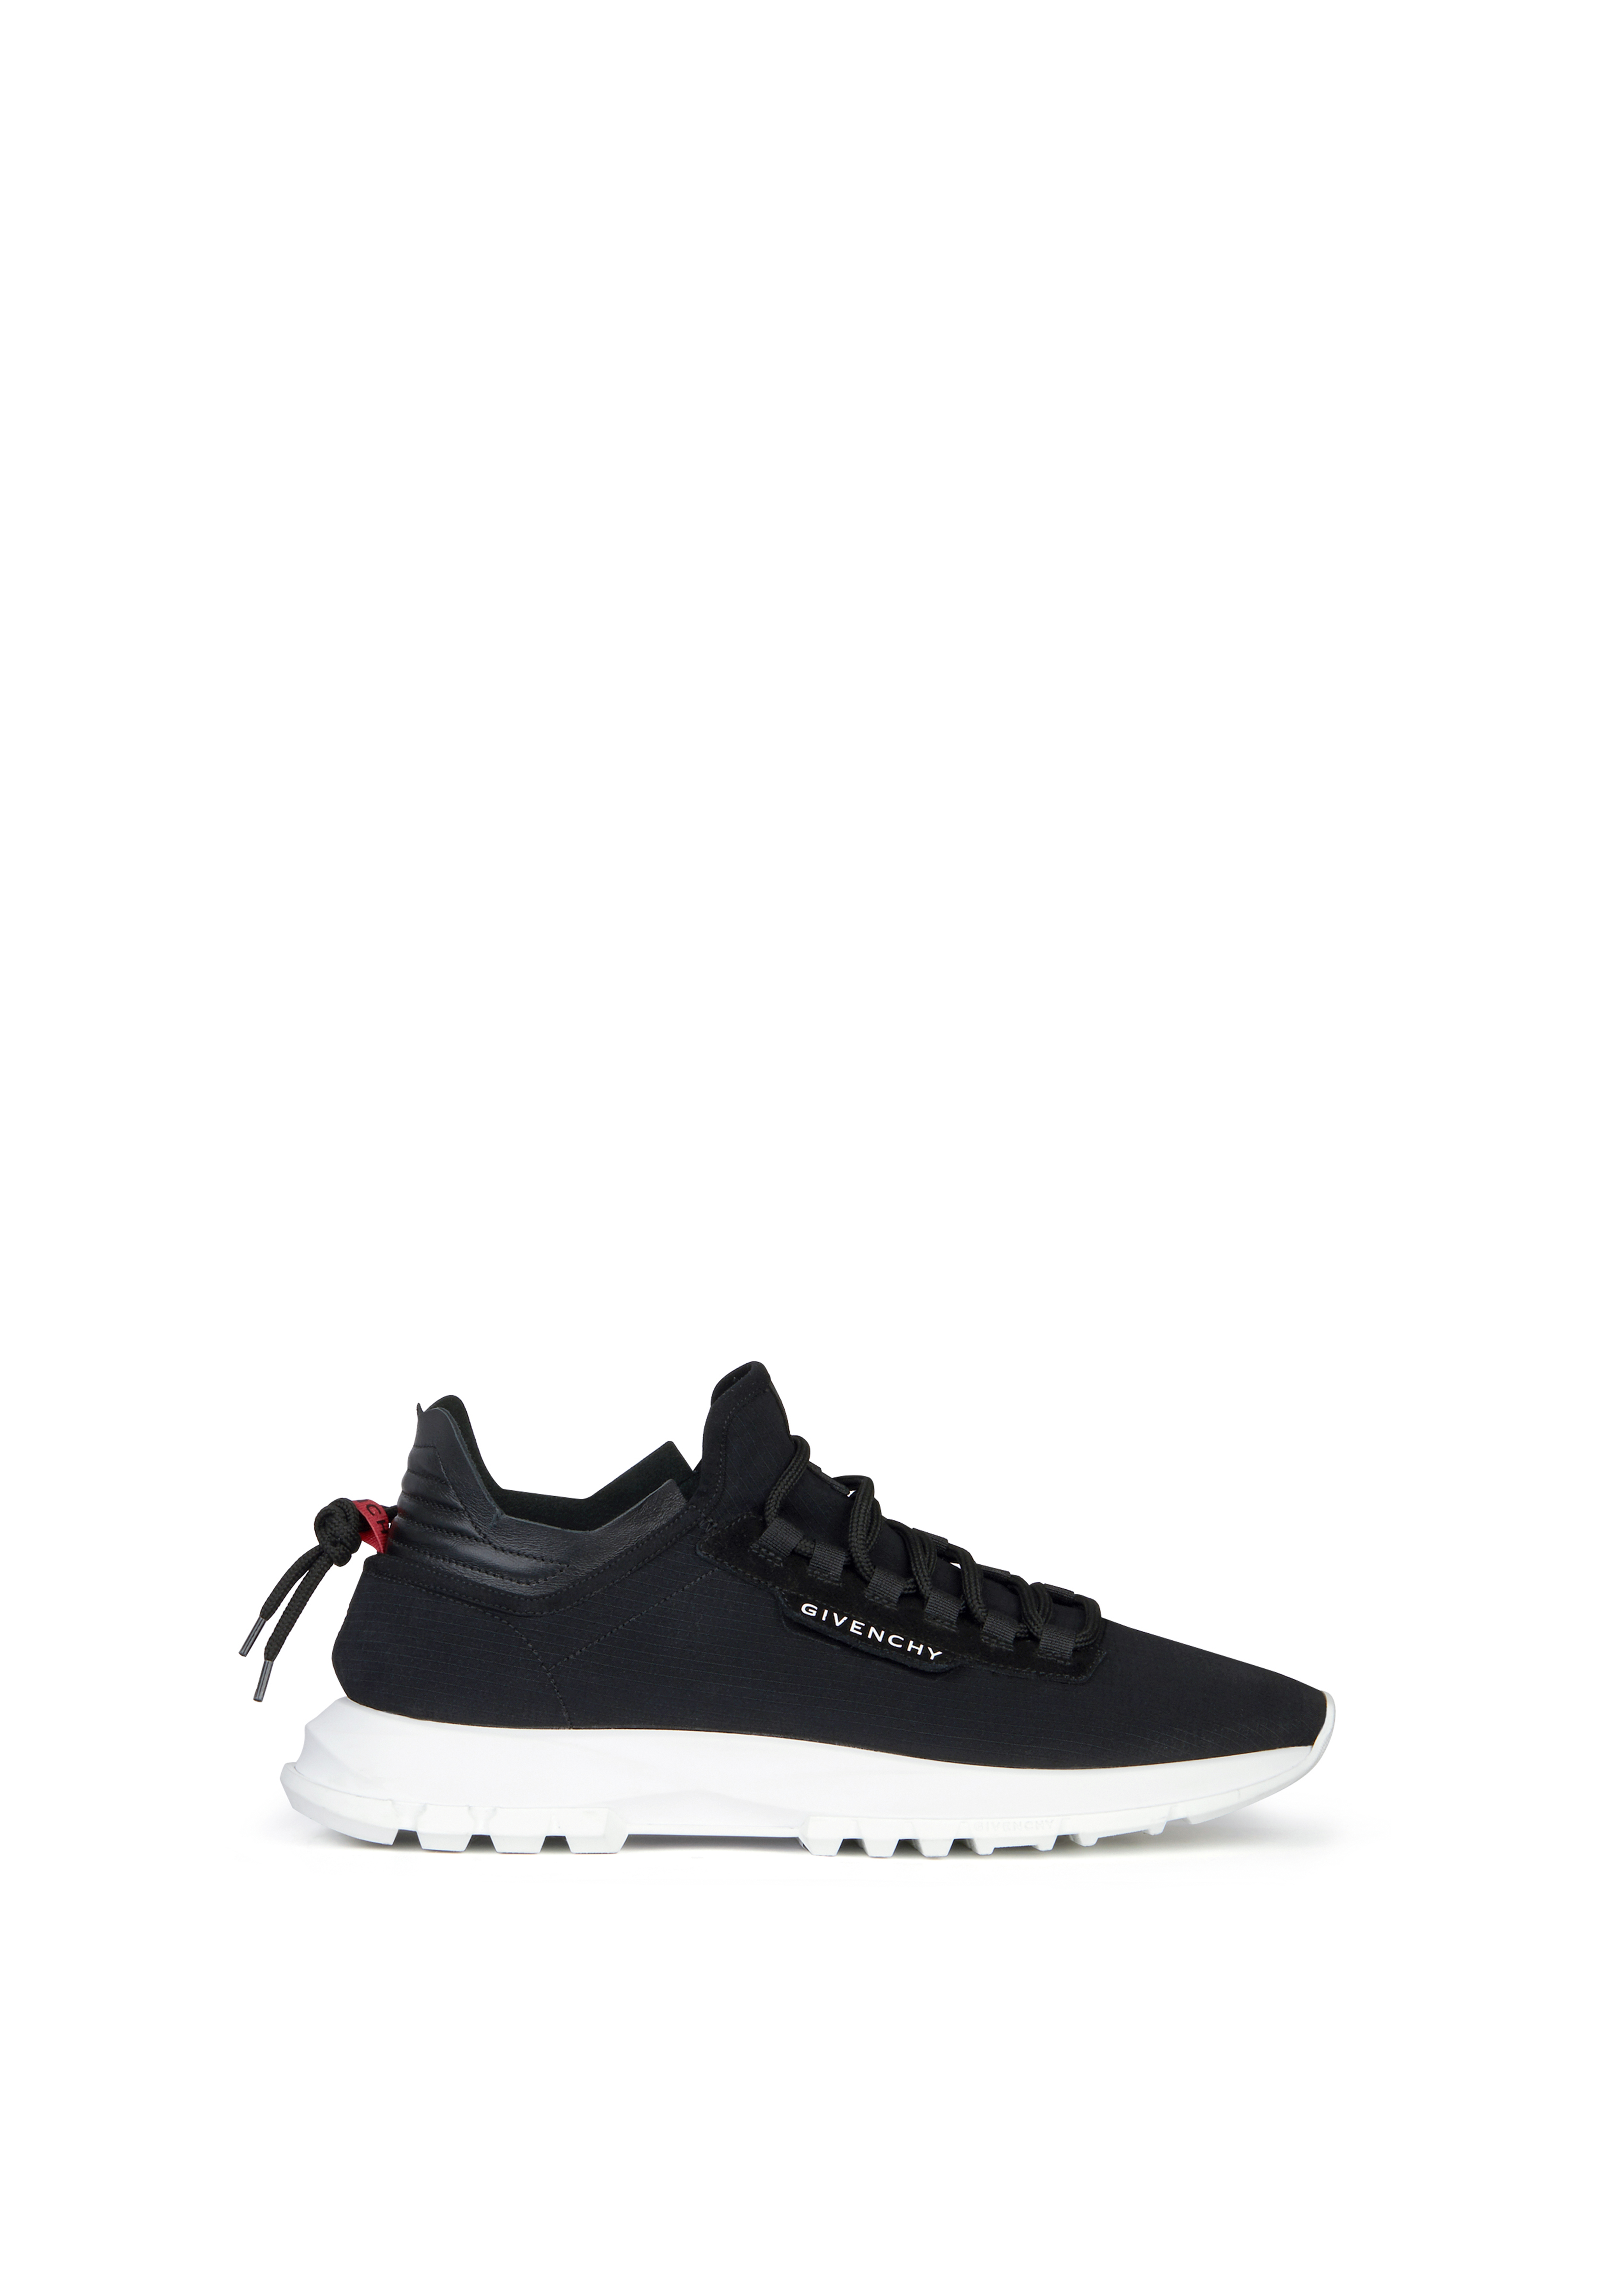 Givenchy SS20 SpectreSneakers_2